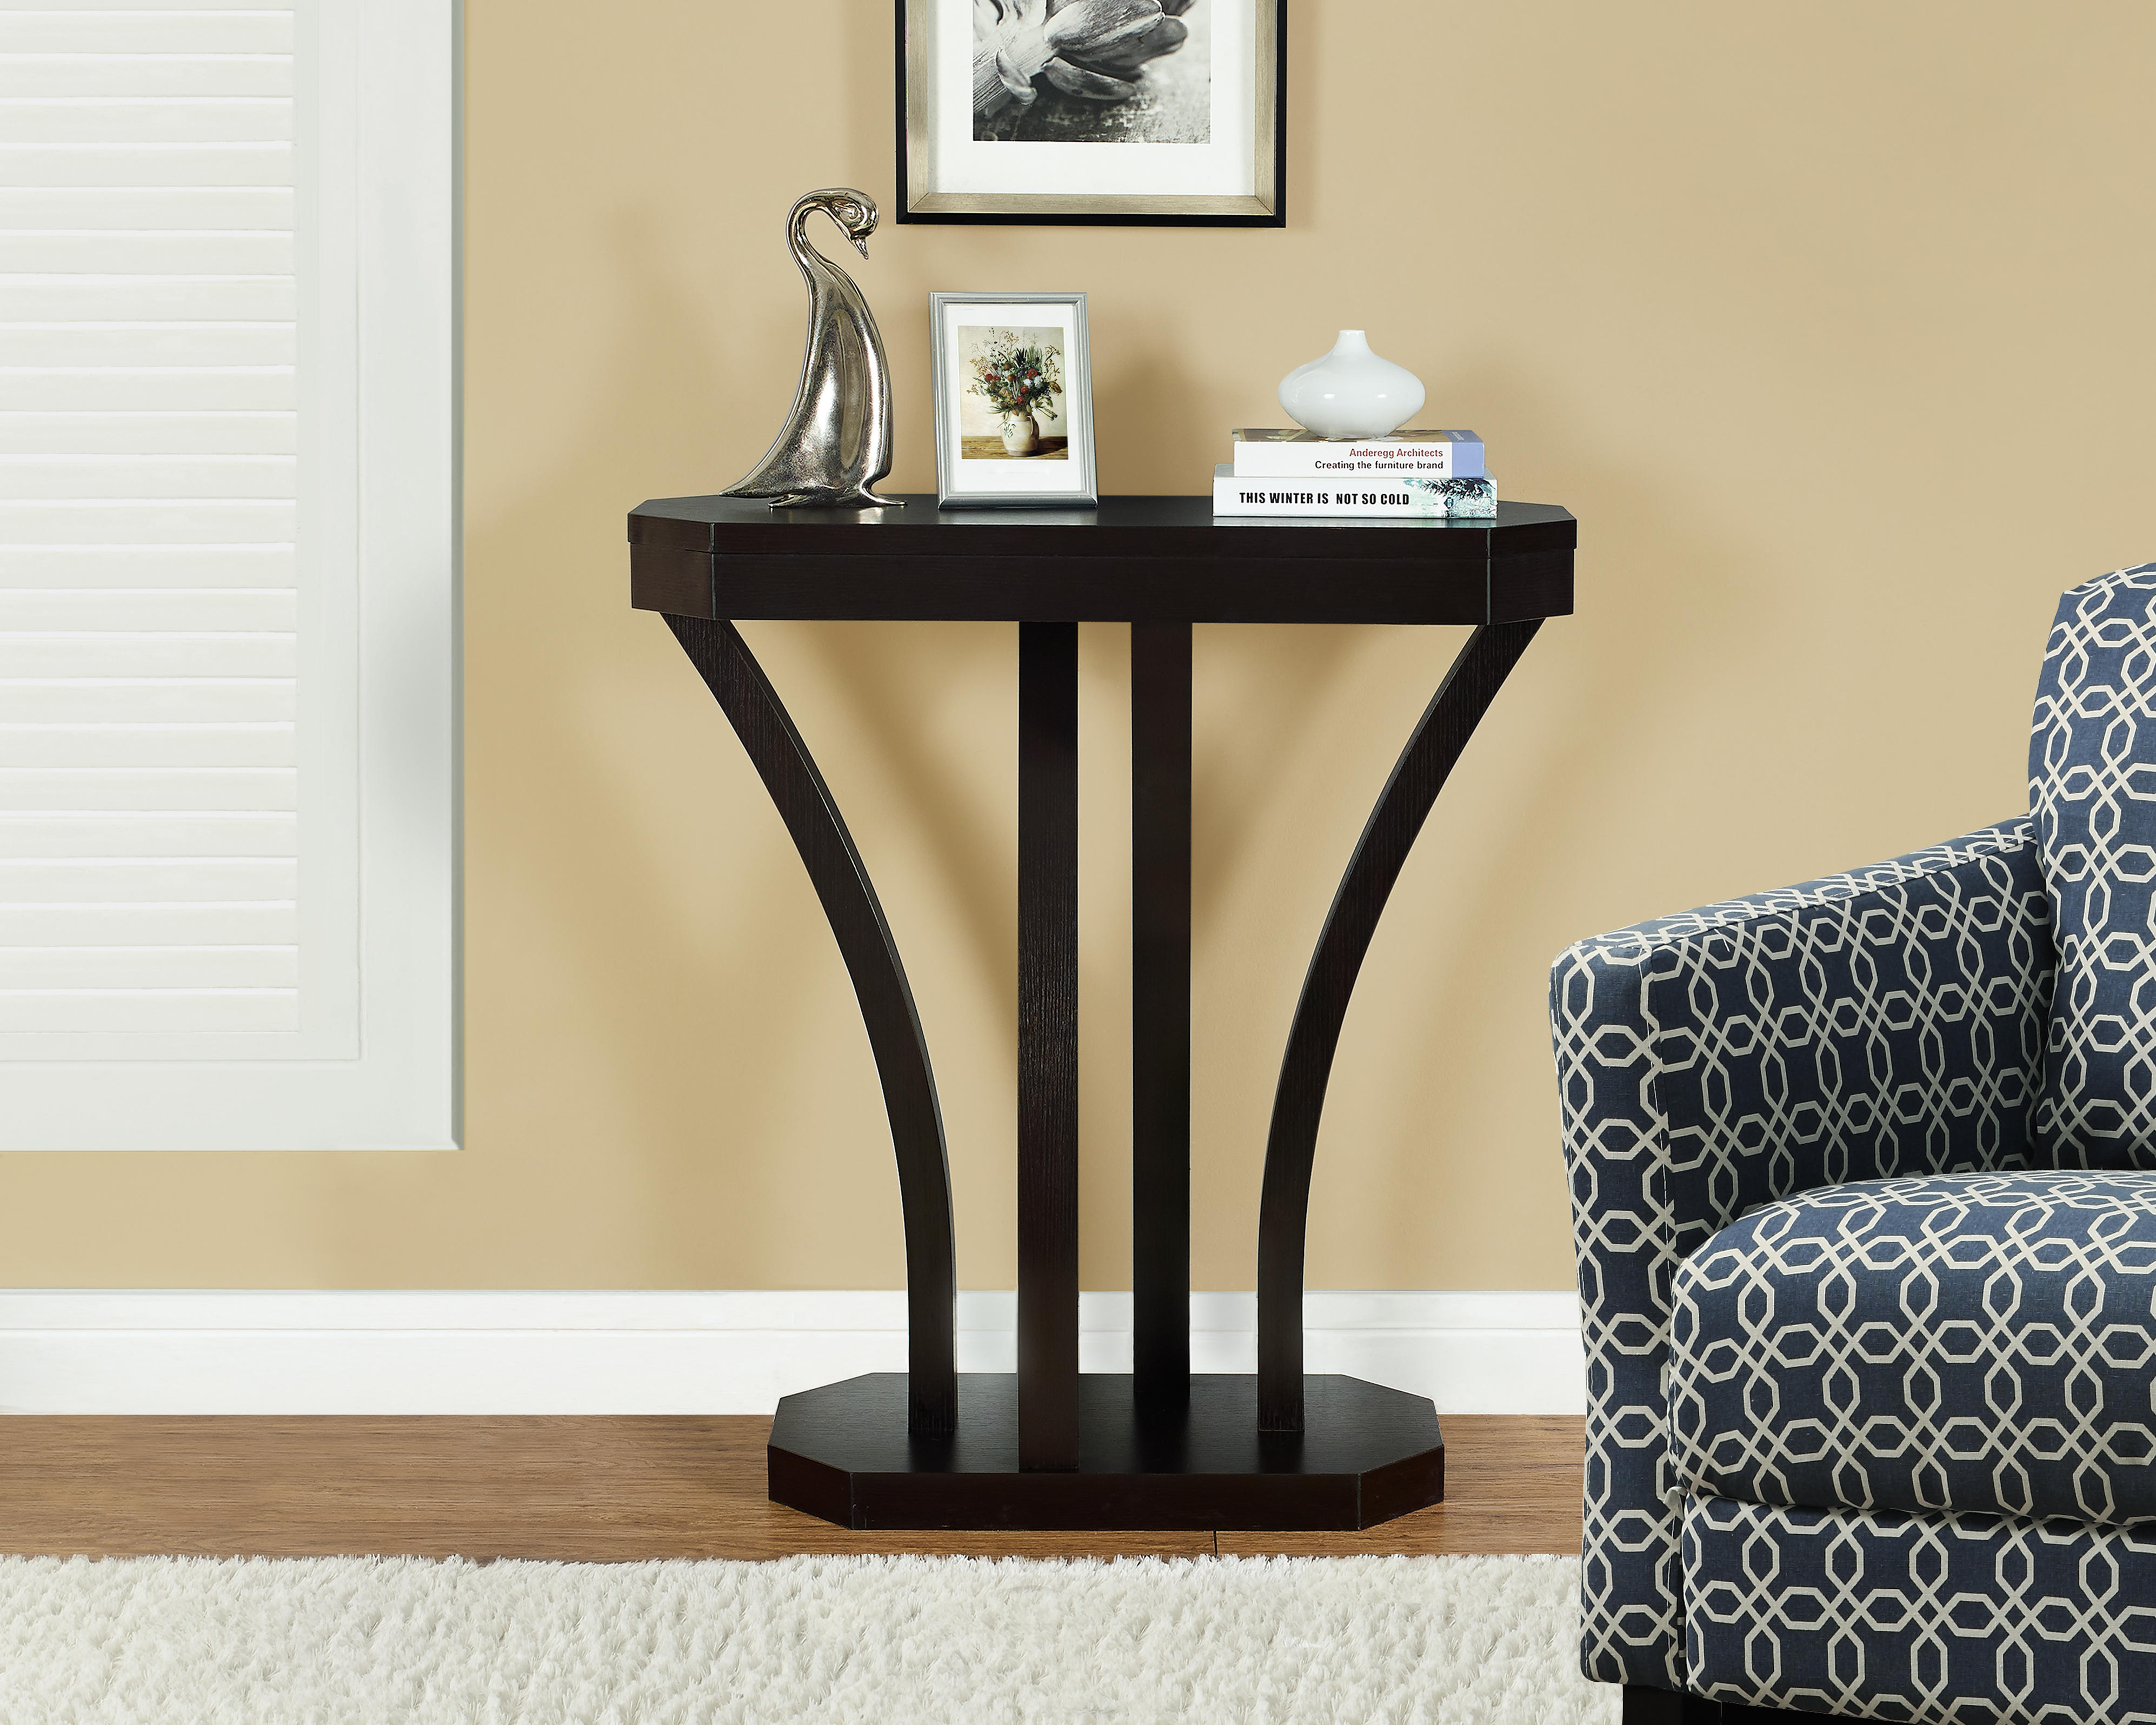 monarch specialties accent table cappuccino hall console prod home furniture entryway hallway tables patio depot coffee top west elm room planner dark grey side fabric tablecloths